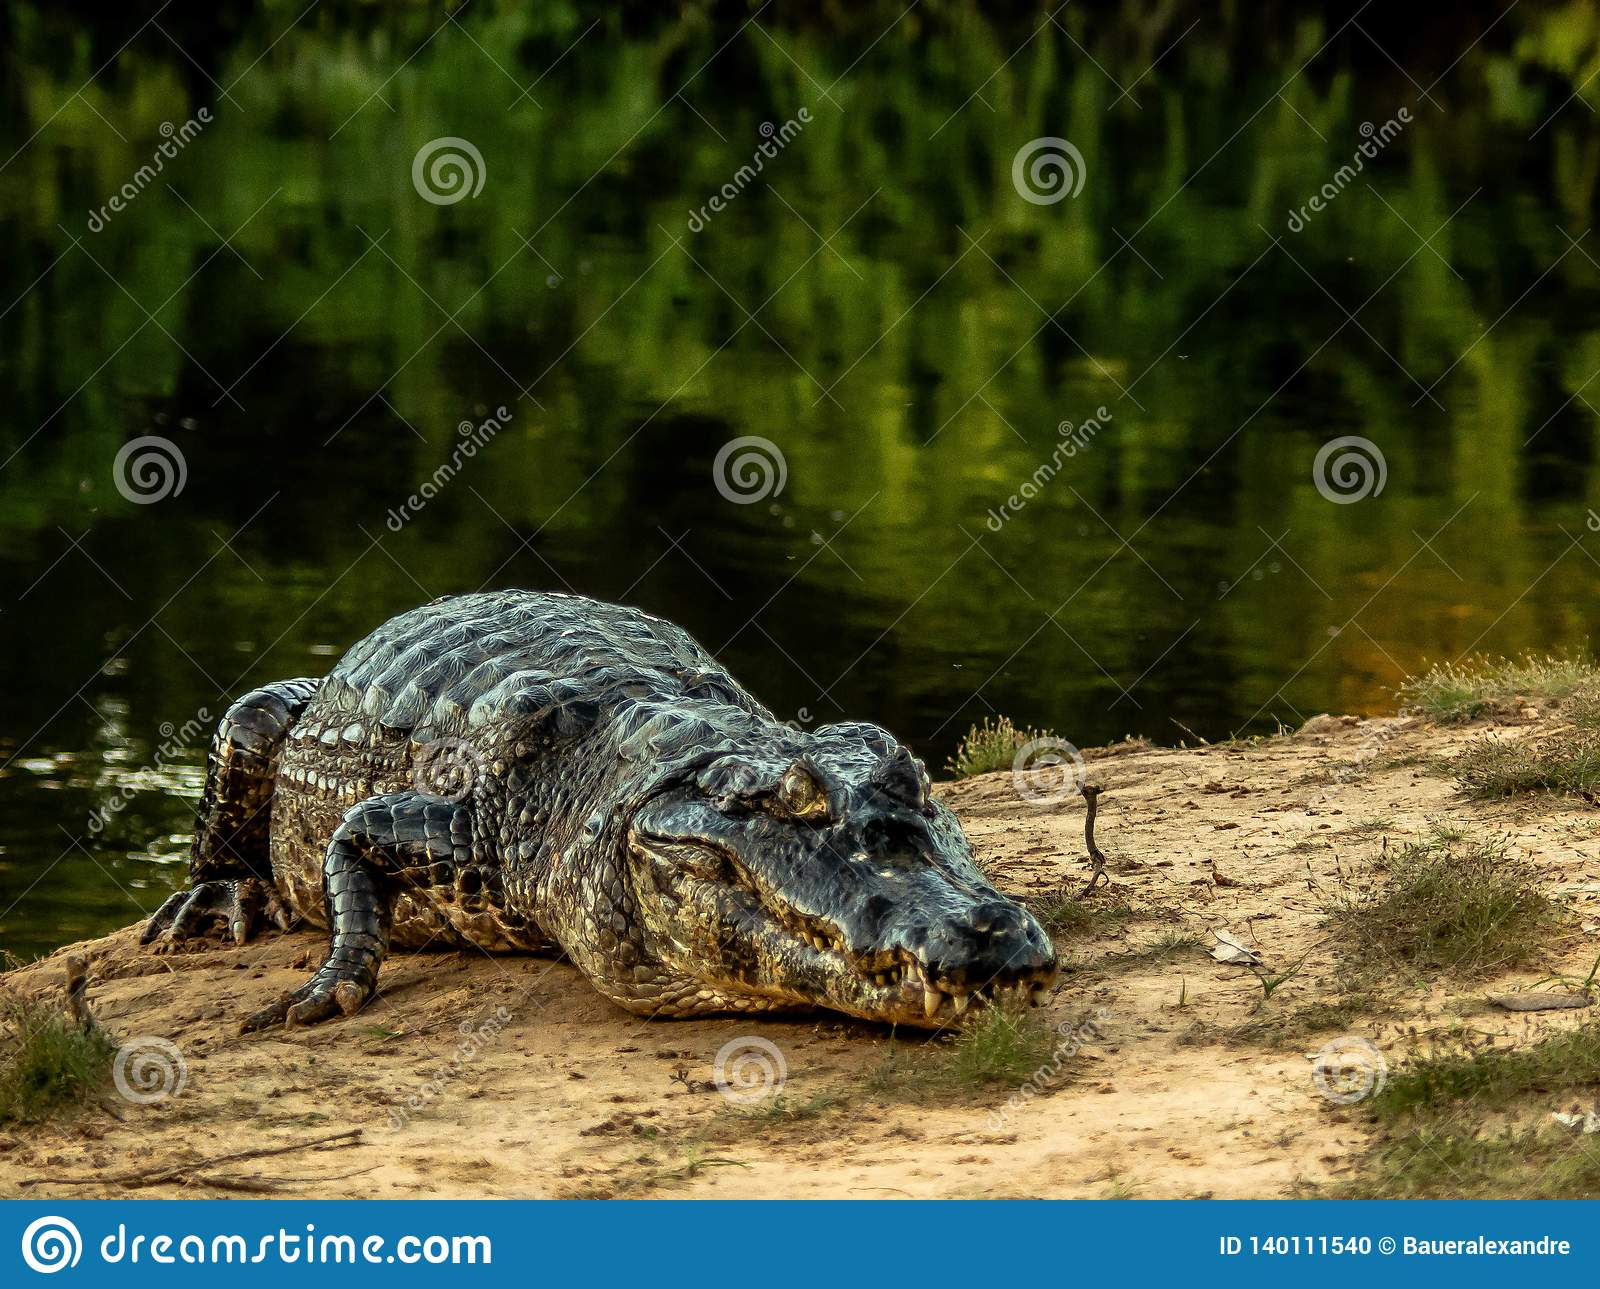 Big caiman in the Pantanal, mato grosso, Bresil